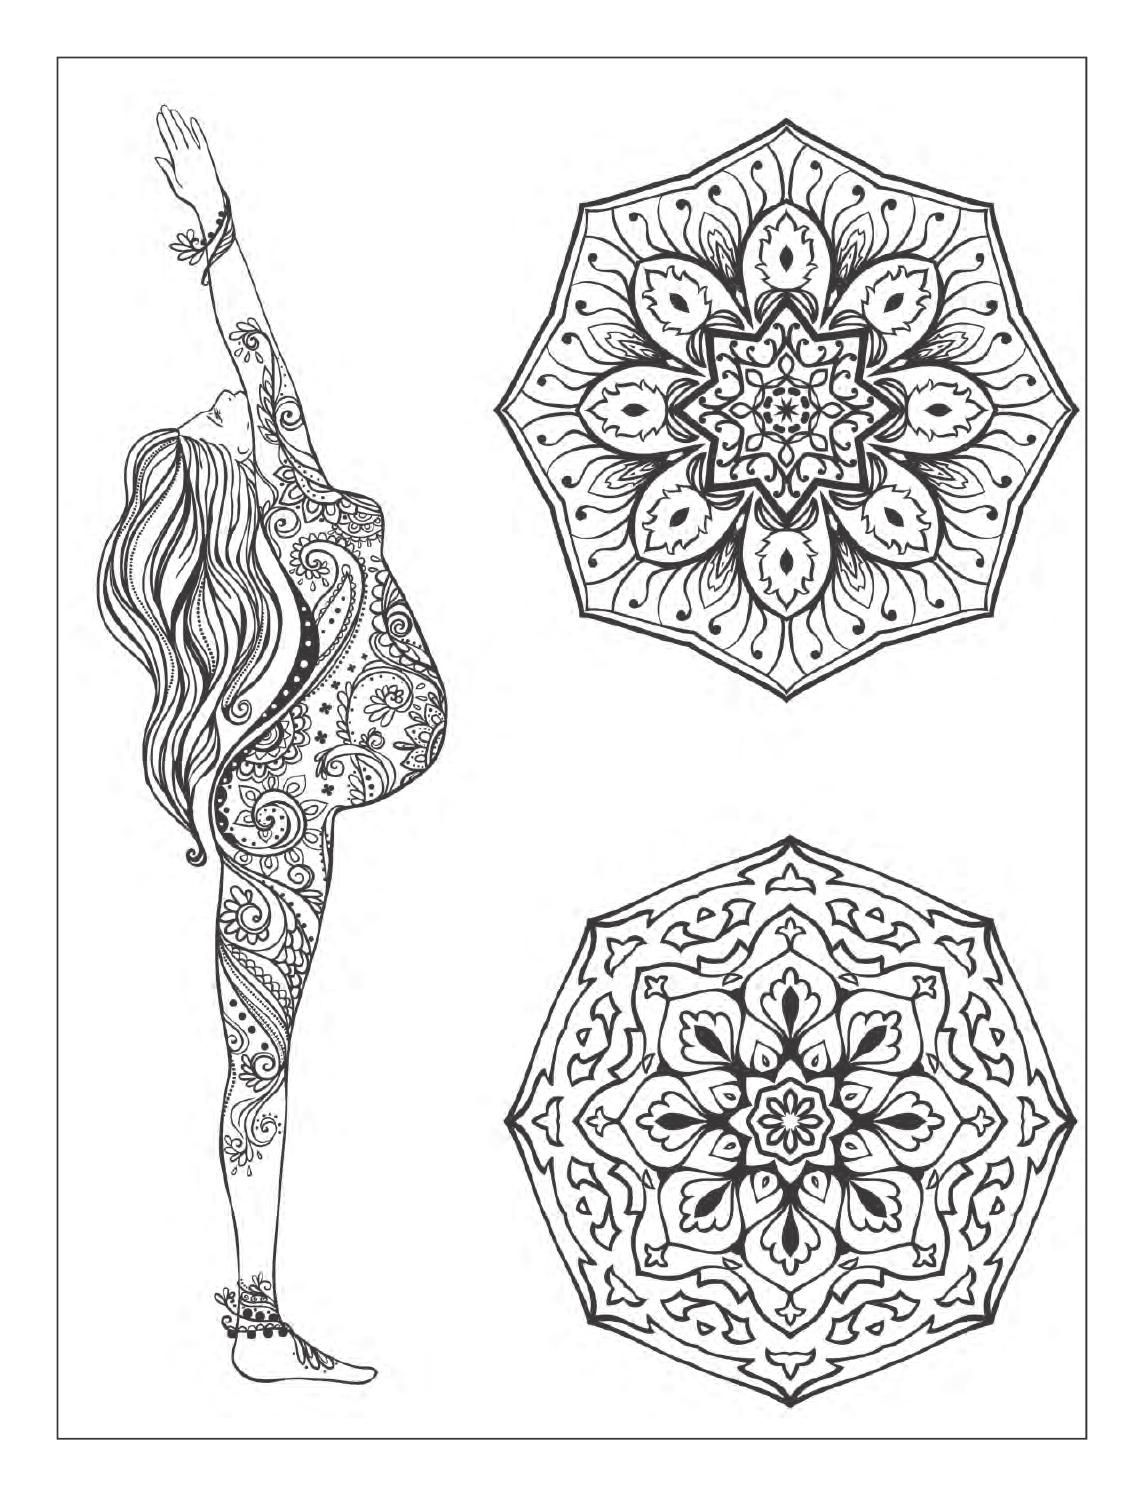 yoga and meditation coloring book for adults with yoga poses and mandalas - Yoga Anatomy Coloring Book